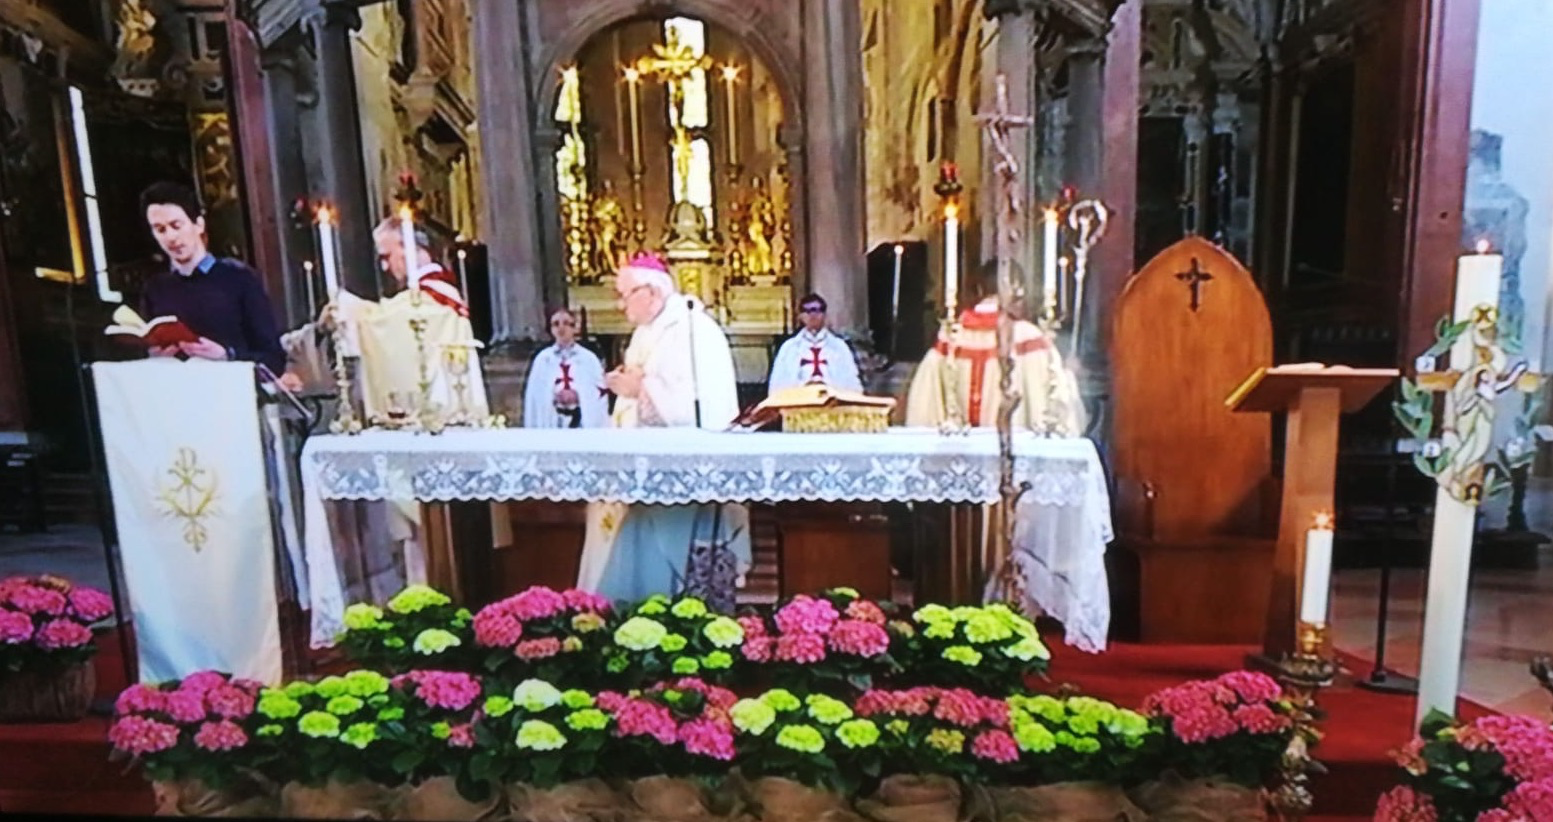 Mass for Easter 2020 with the bishop of Verona H.E. Giuseppe Zenti